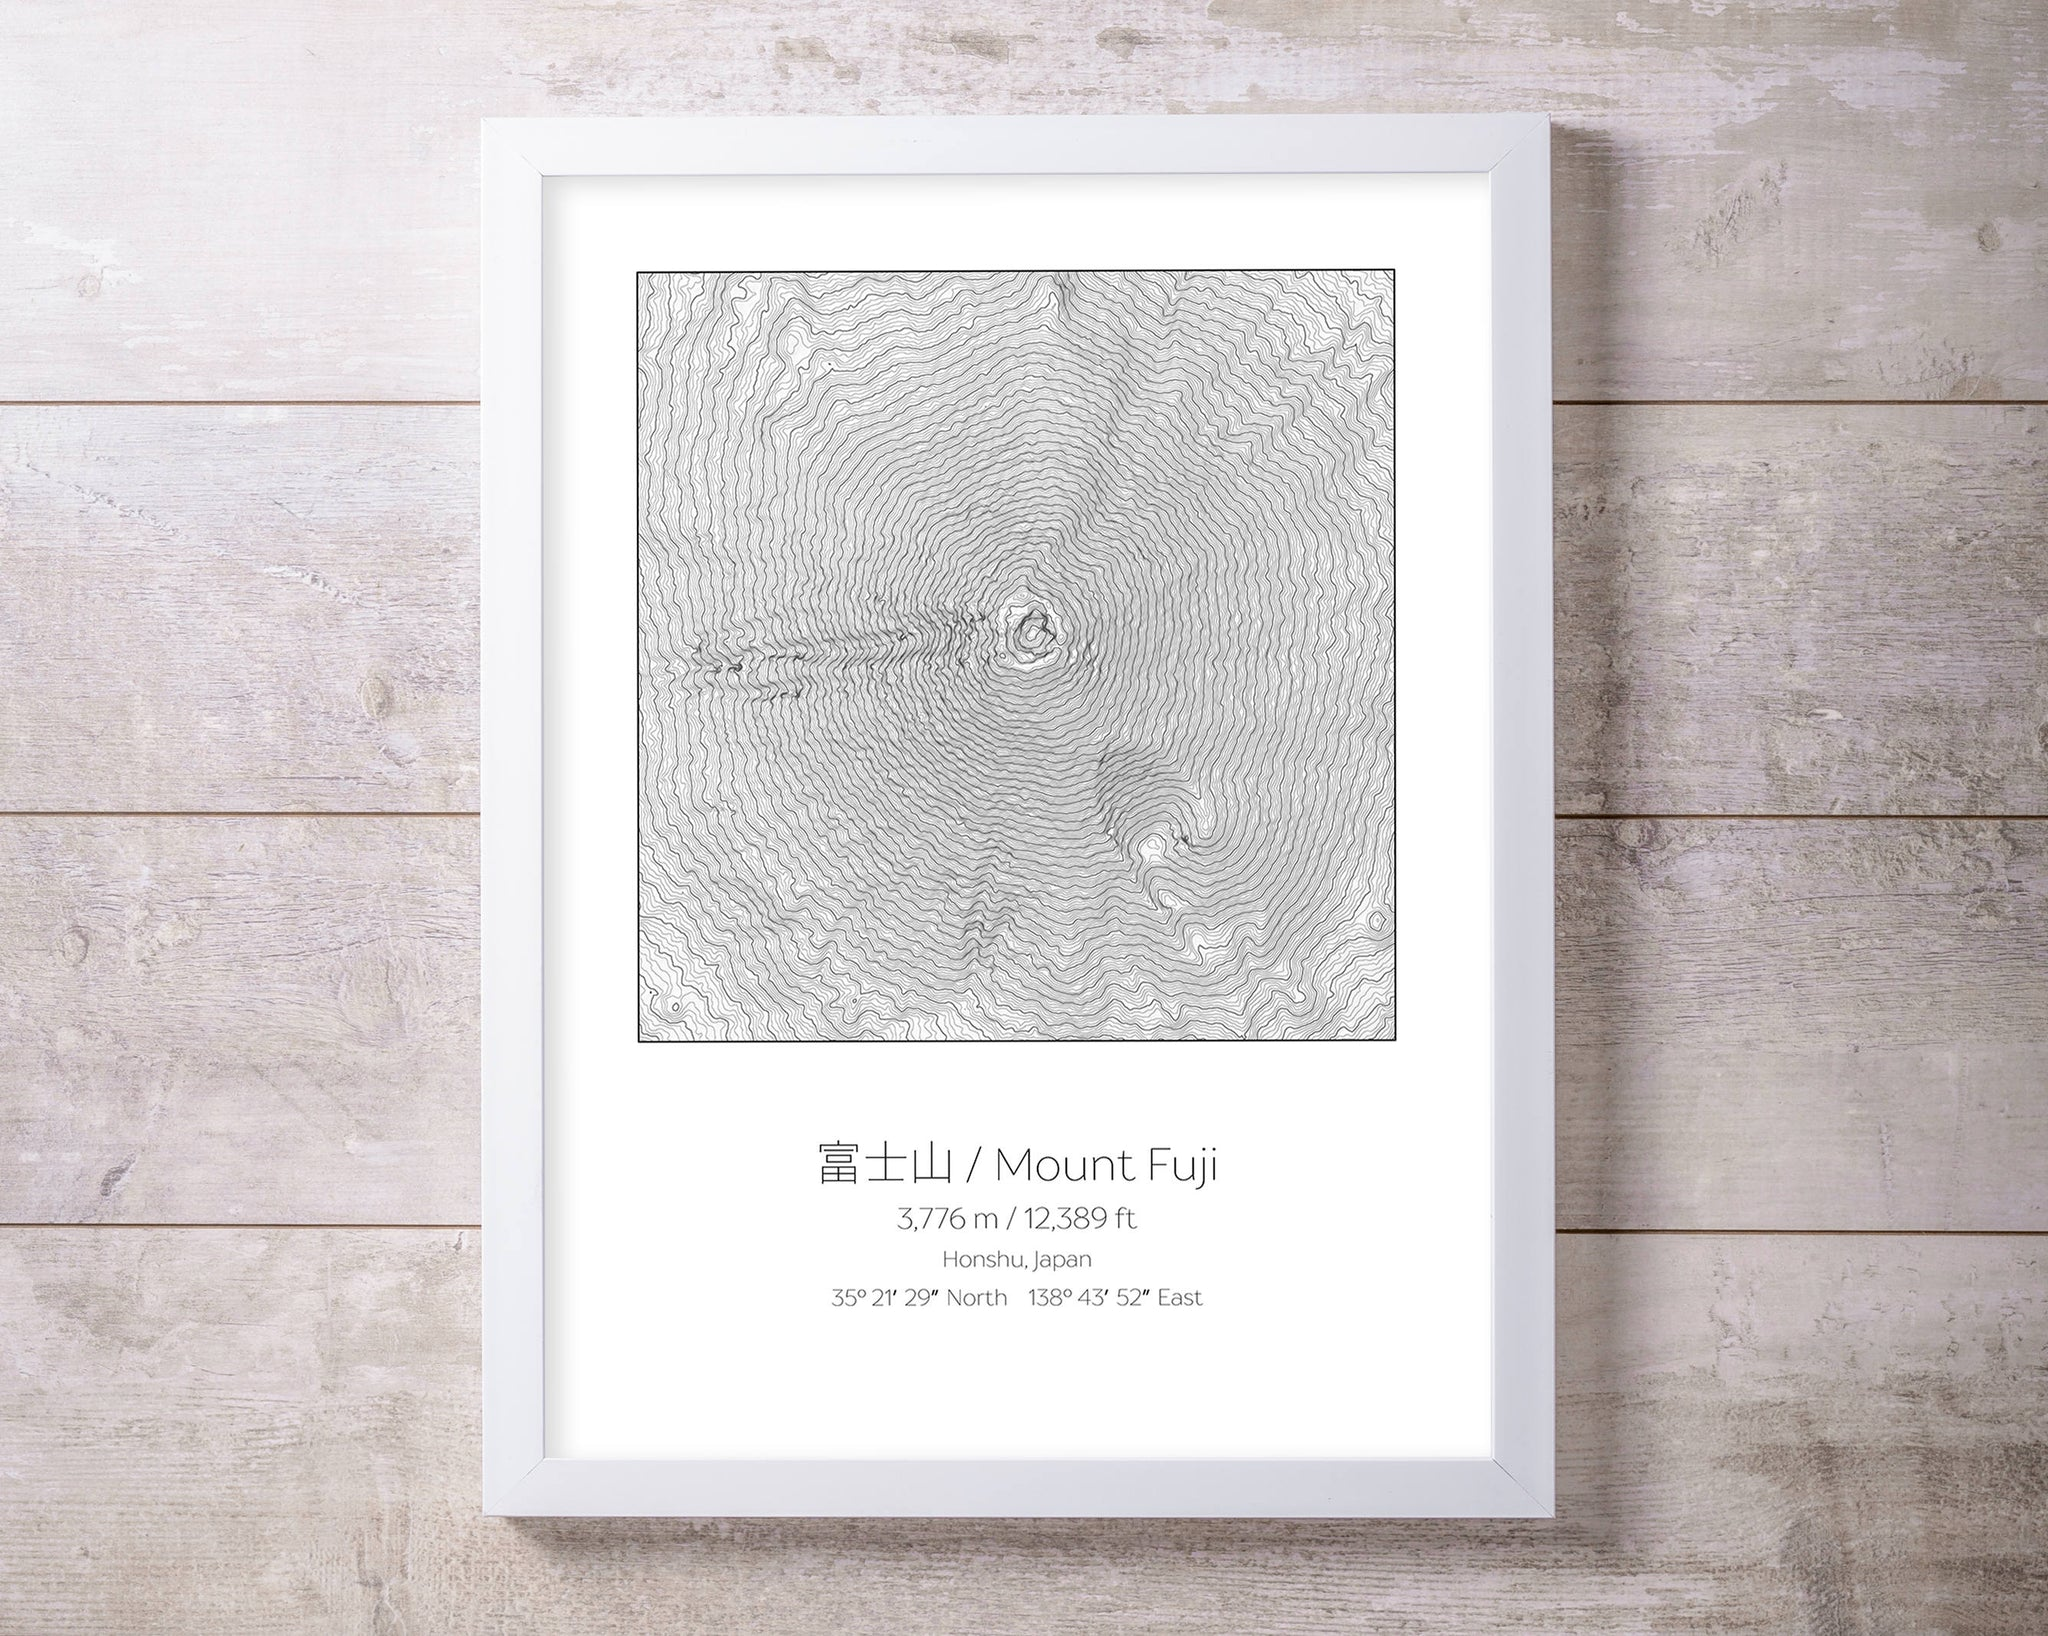 Mt Fuji, Japan Topography Elevation Print Wall Art